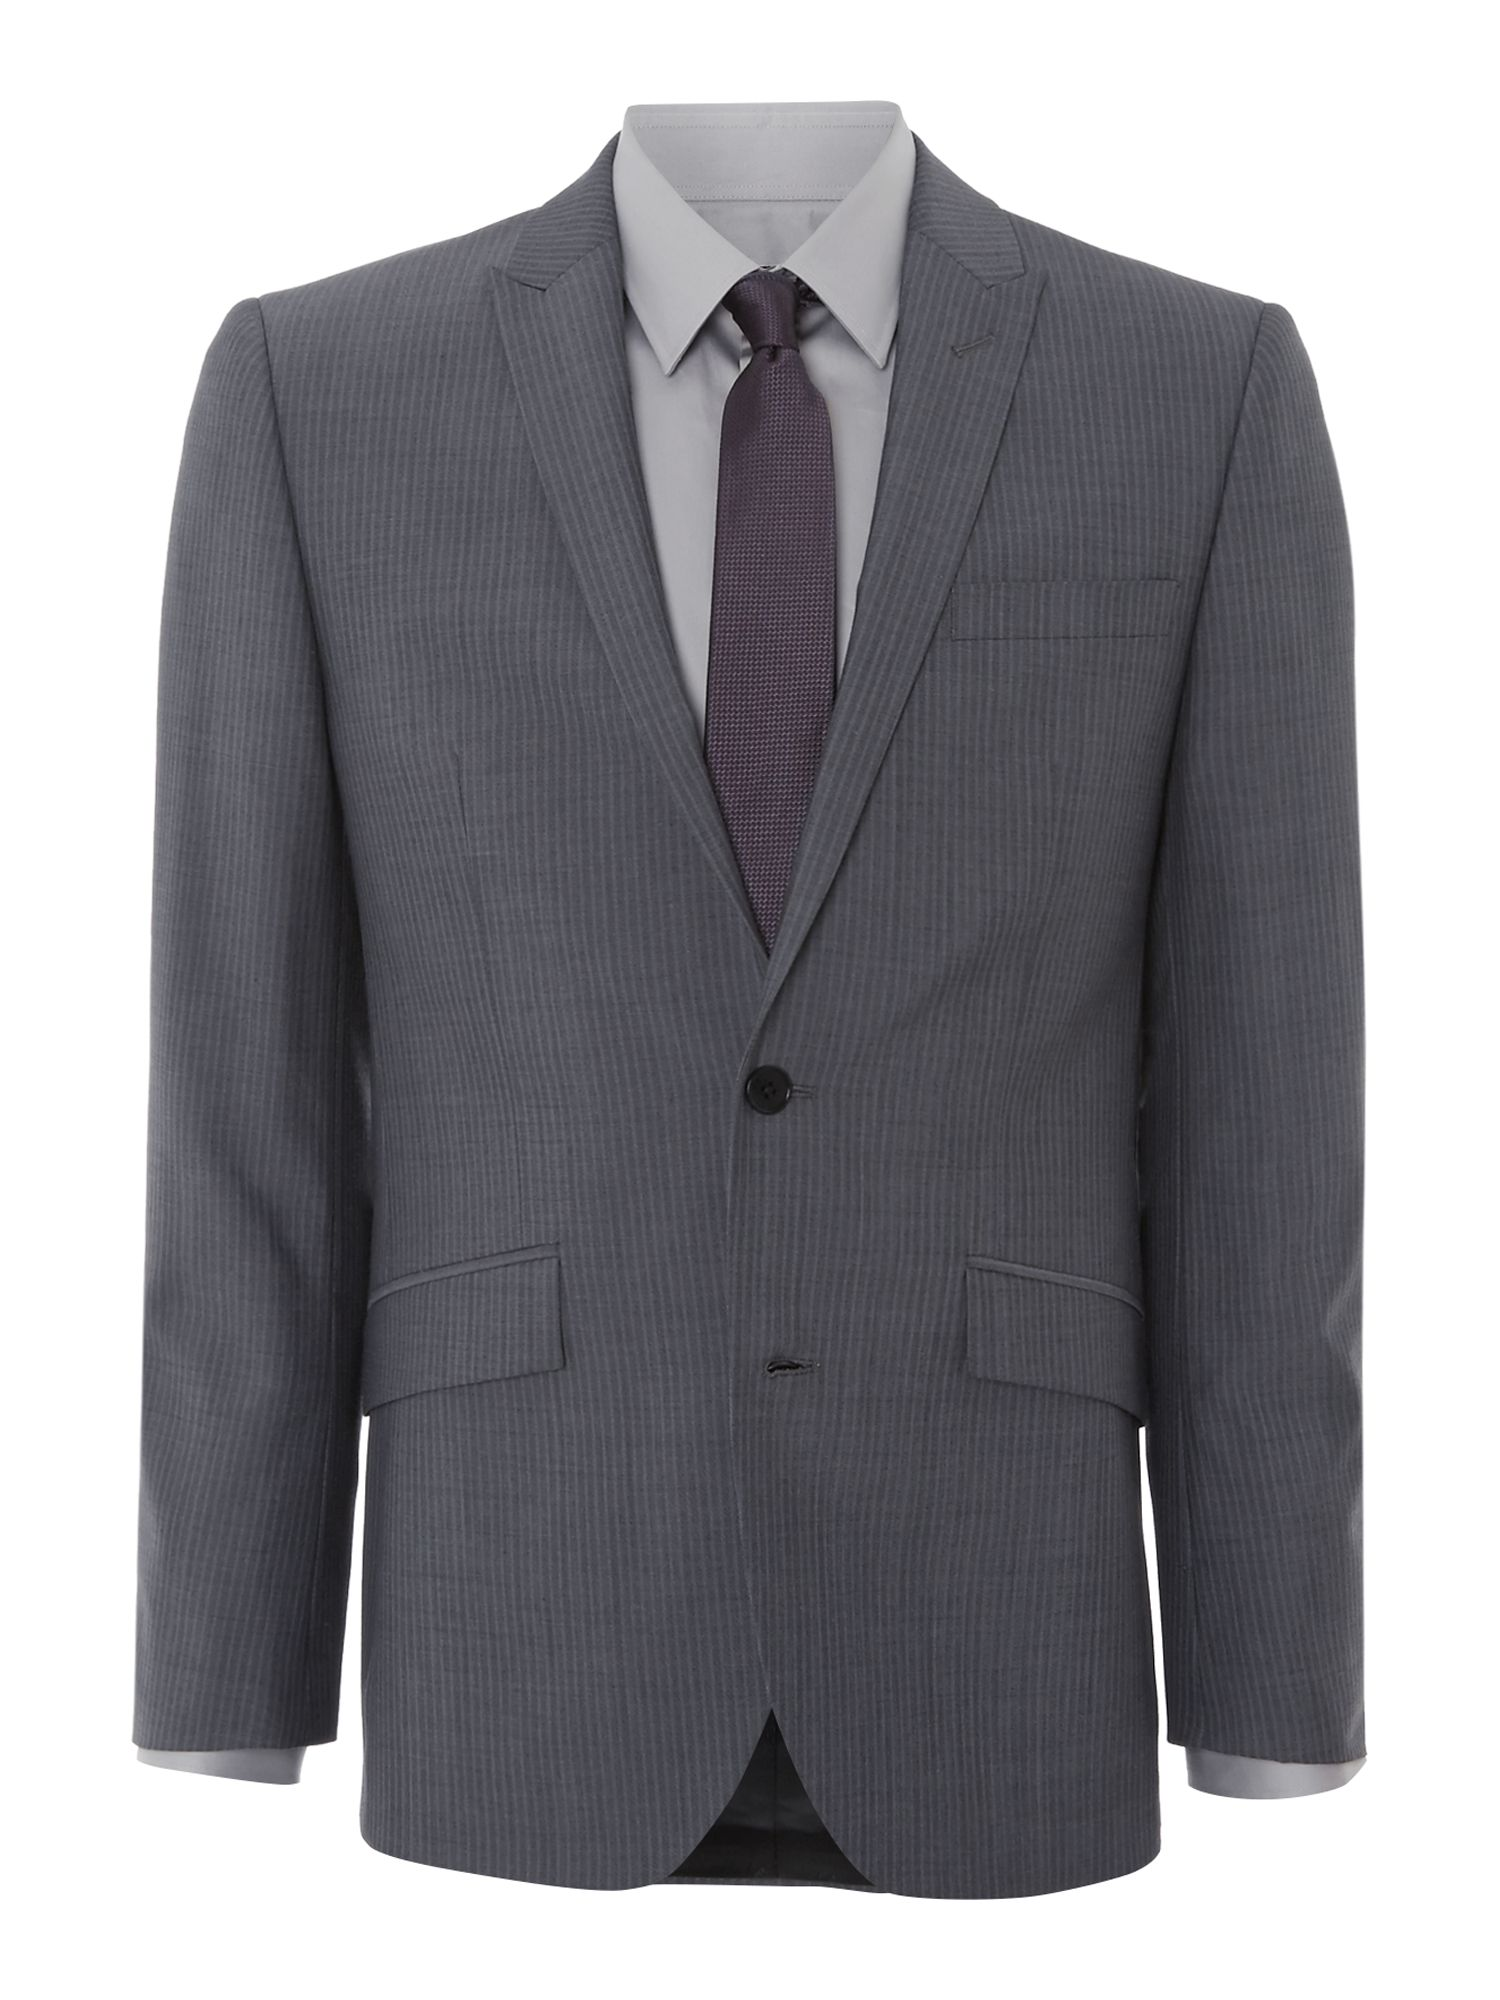 Arion shadow stripe peak lapel suit jacket